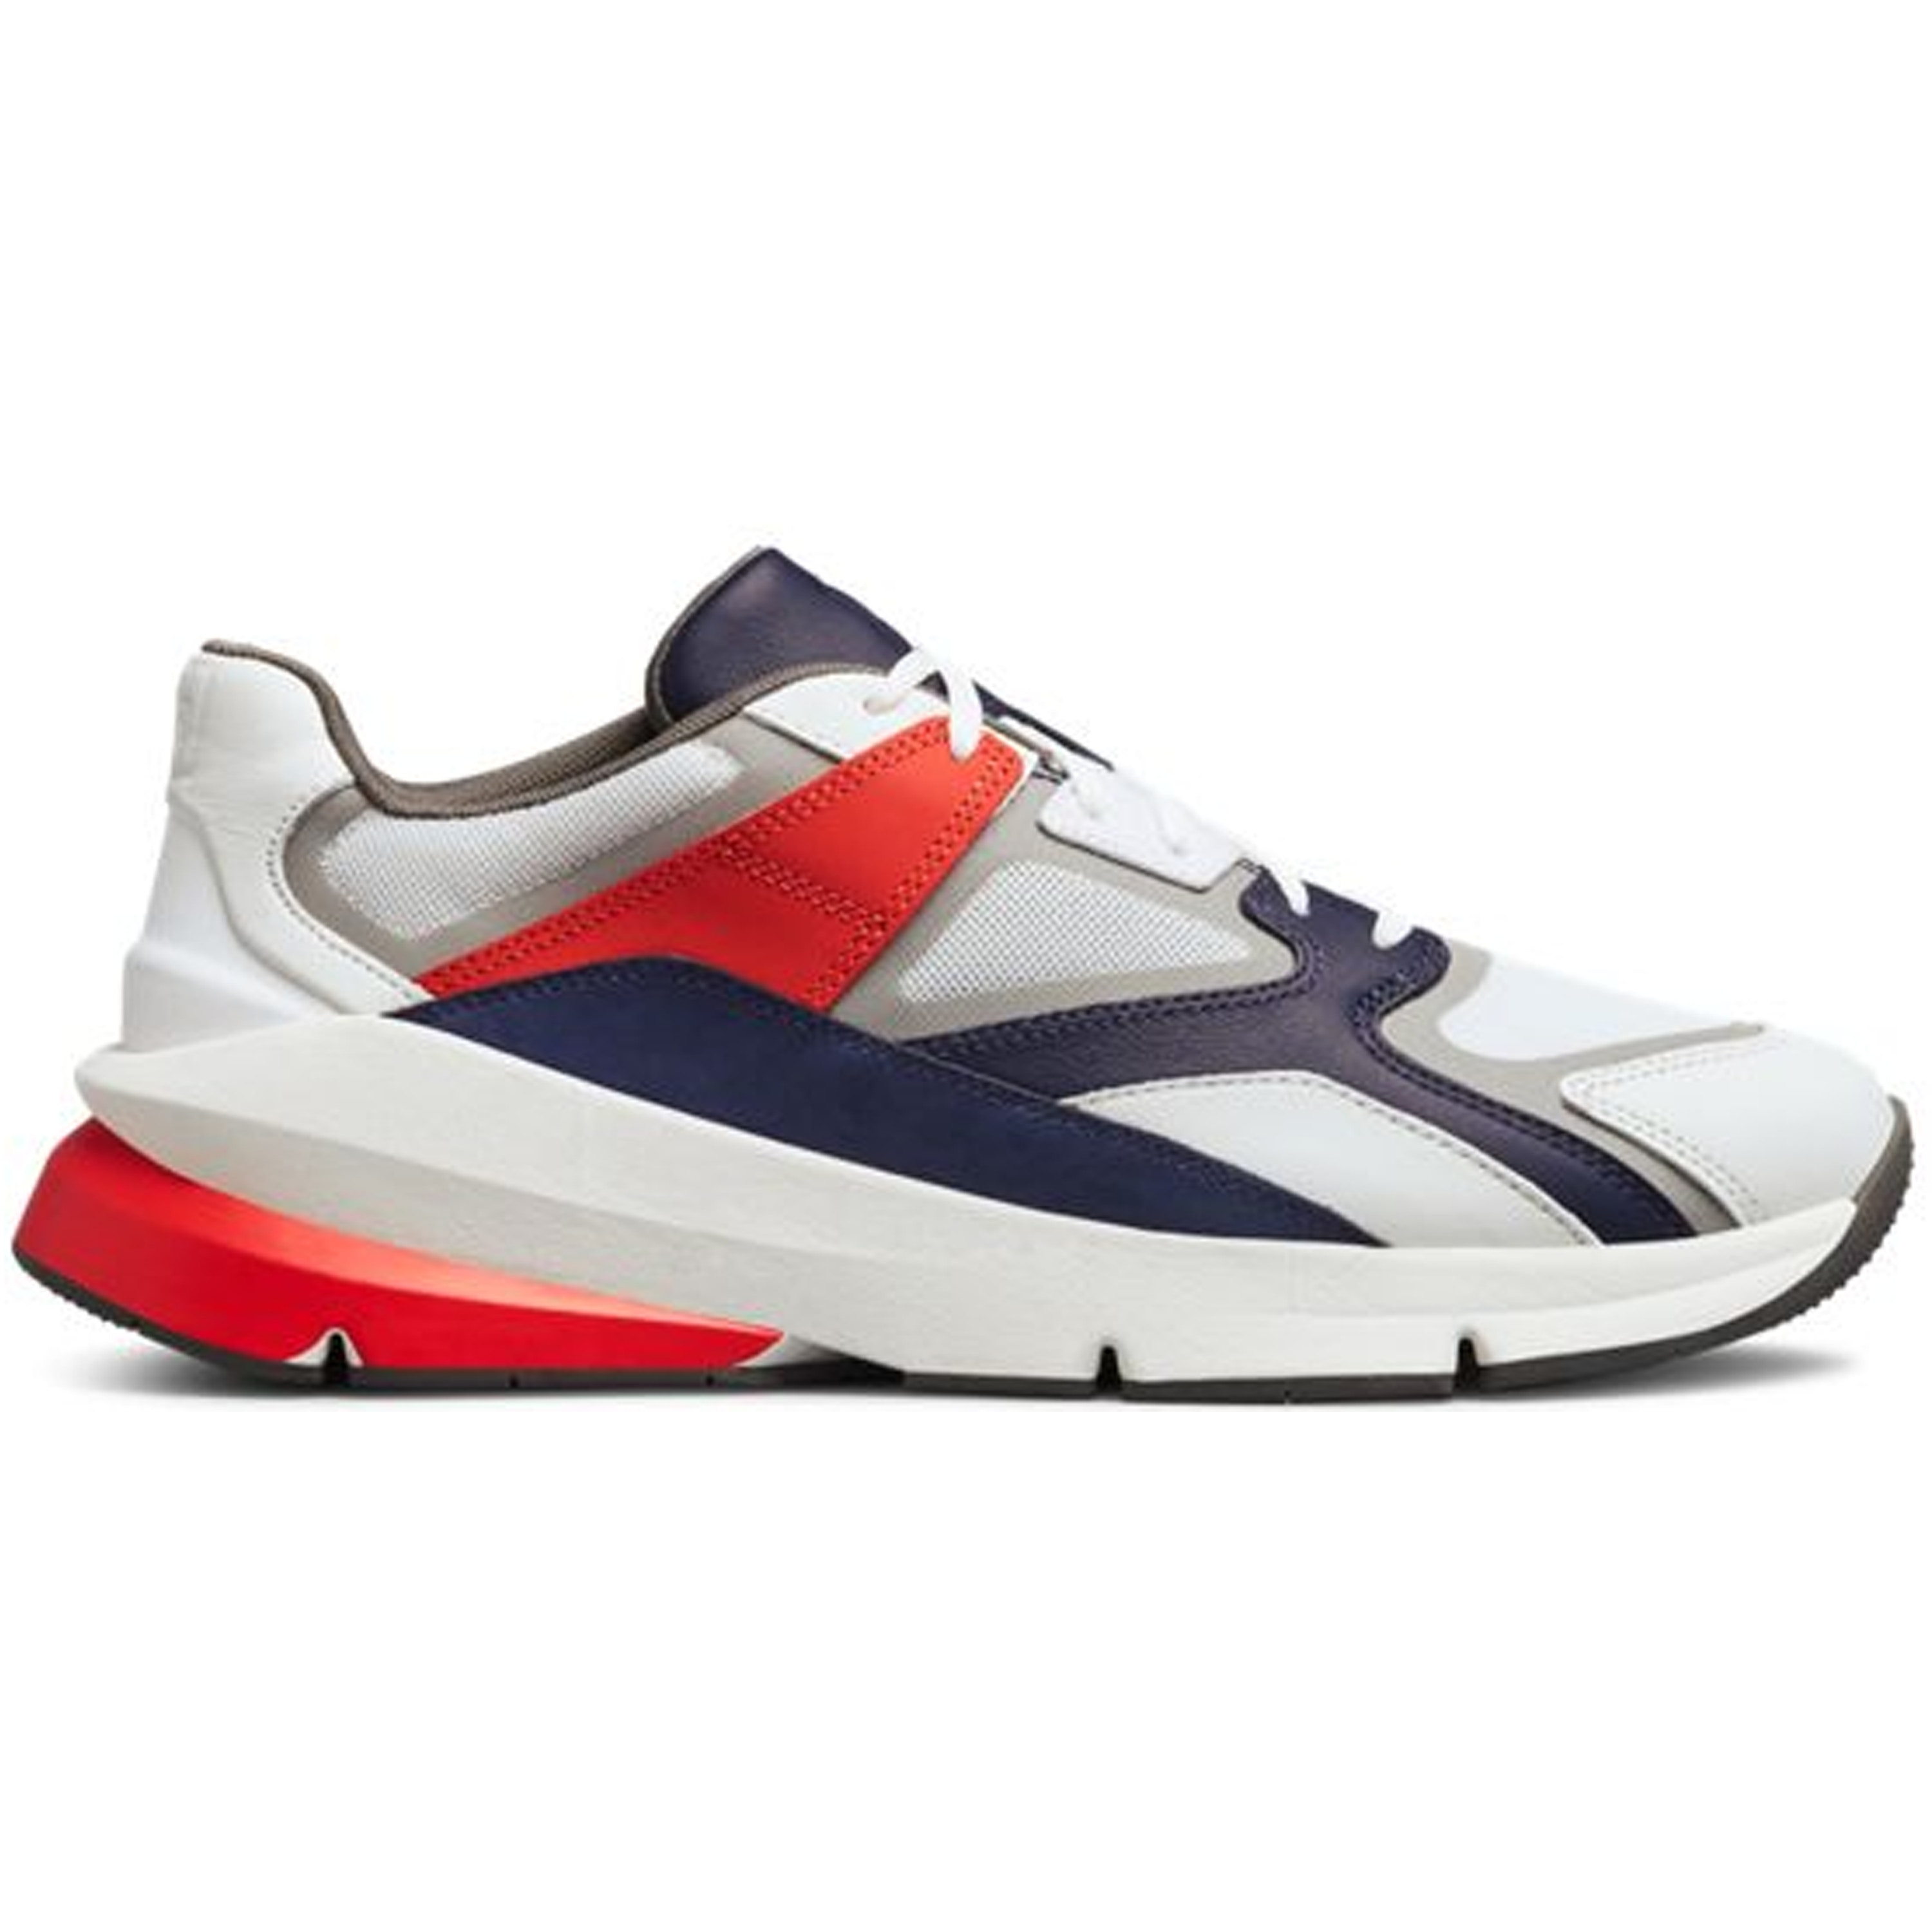 Under Armour Forge 96 White Red Blue (3021795-100)